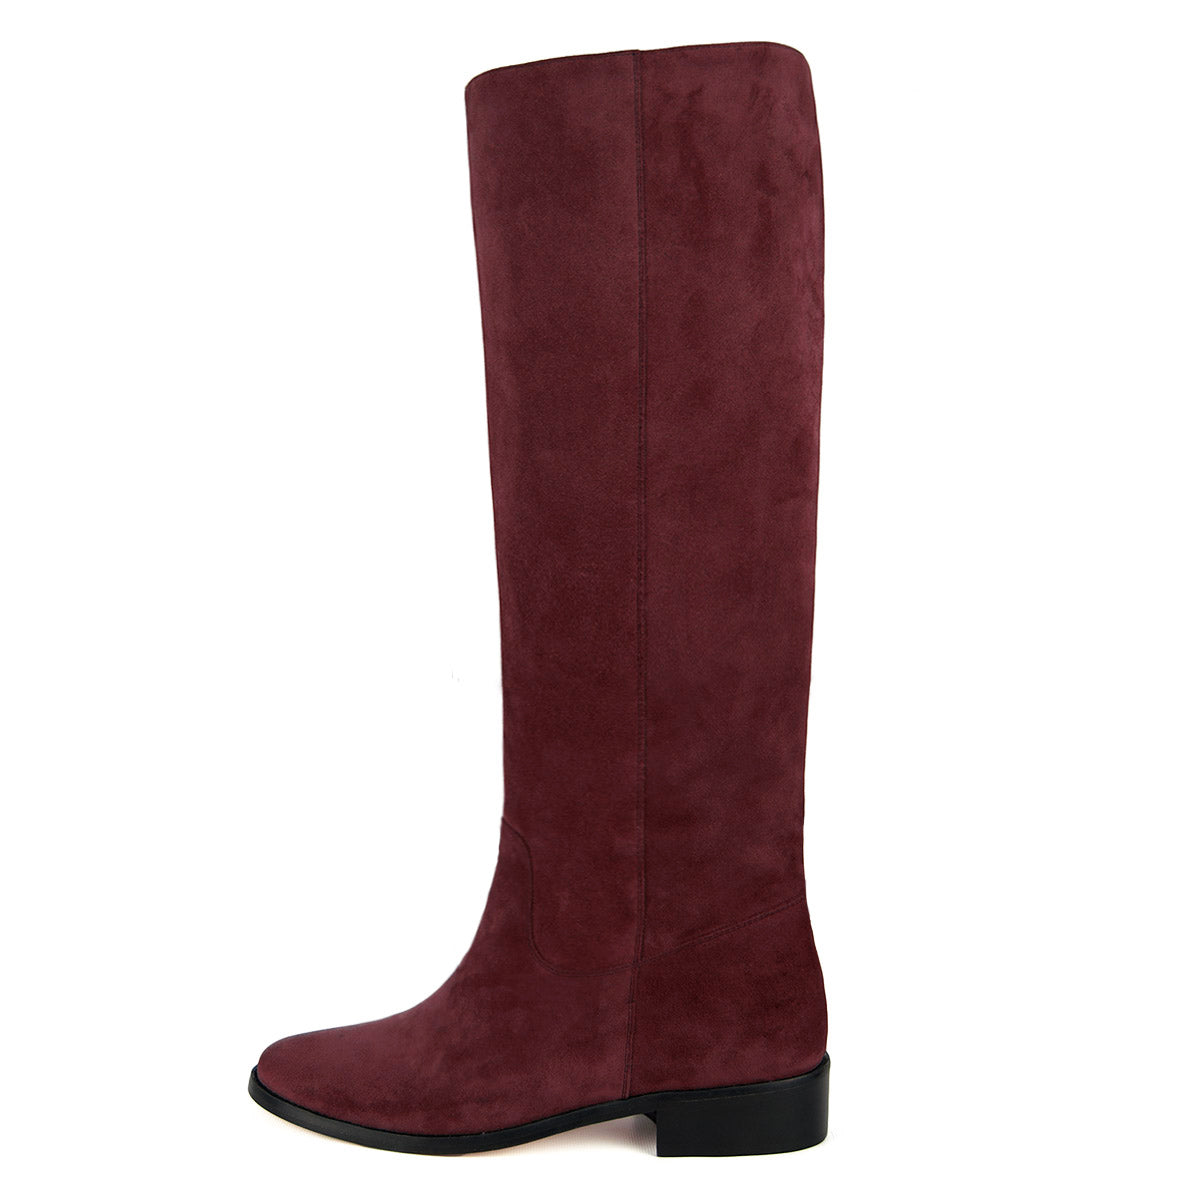 Dalia suede, burgundy - wide calf boots, large fit boots, calf fitting boots, narrow calf boots